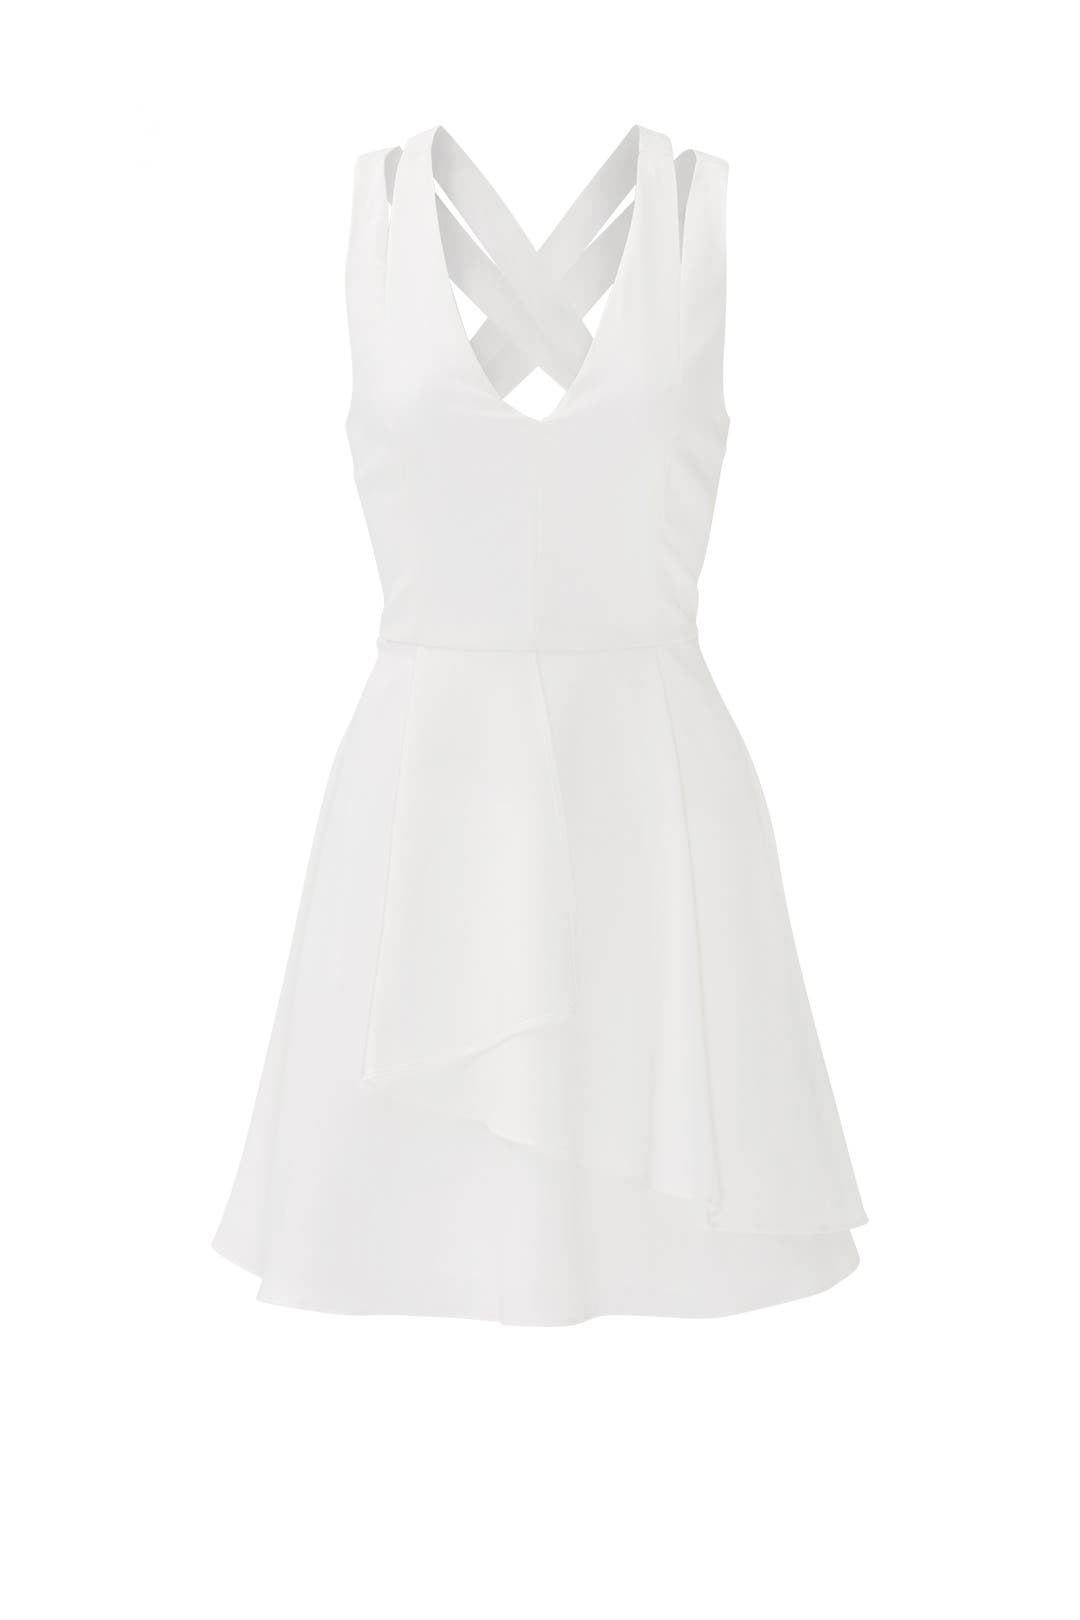 White Double Ruffle Dress by Adelyn Rae for $30 - $45 | Rent the ...